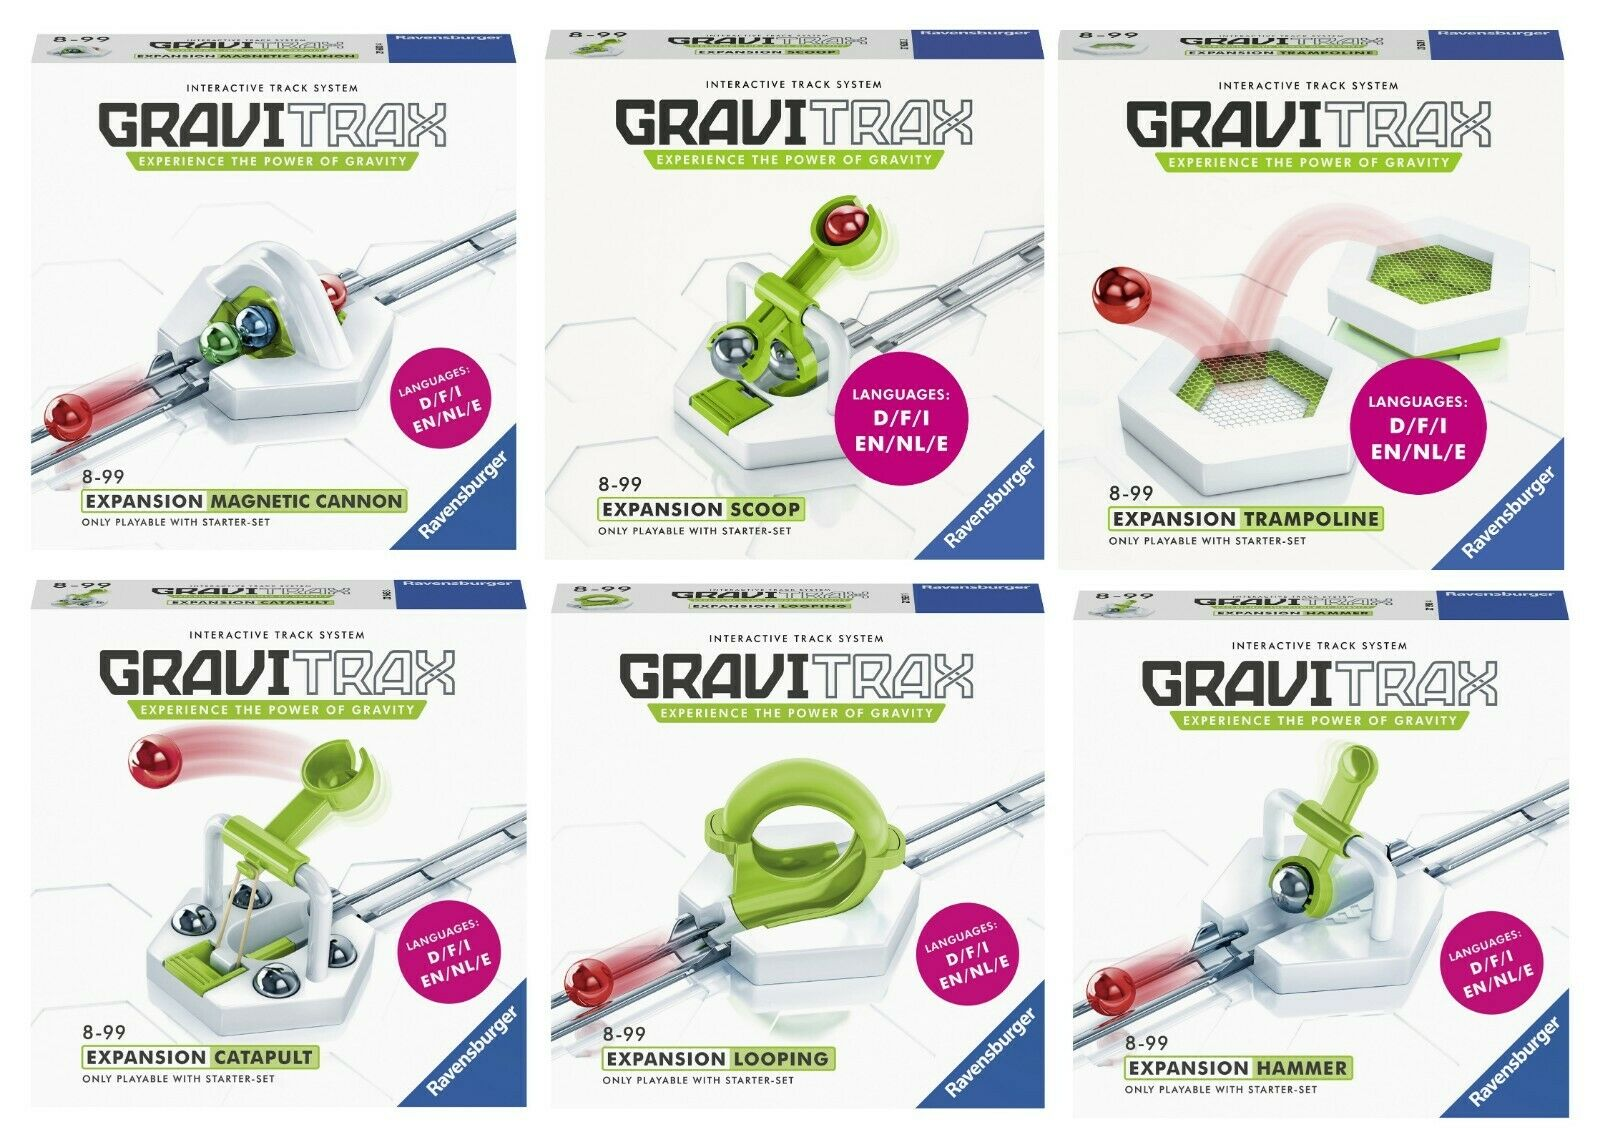 GRAVITRAX 6 EXTENSIONES  Looping, Hammer, Cannon, Catapult, Scoop y Trampoline